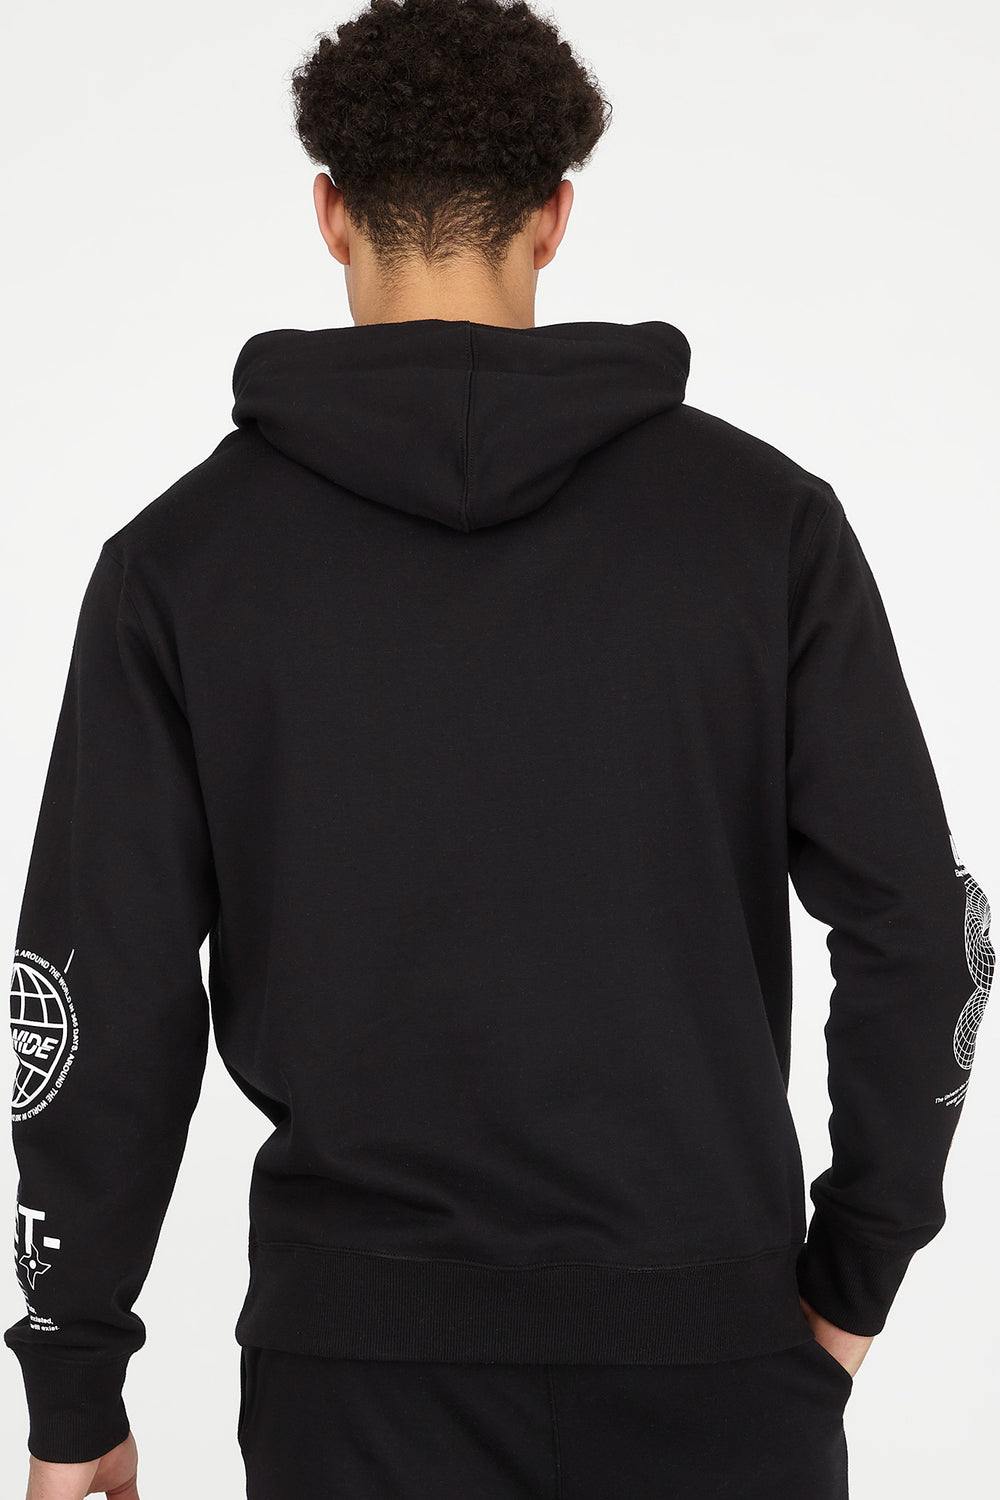 Digital Text Elements Graphic Popover Hoodie Black